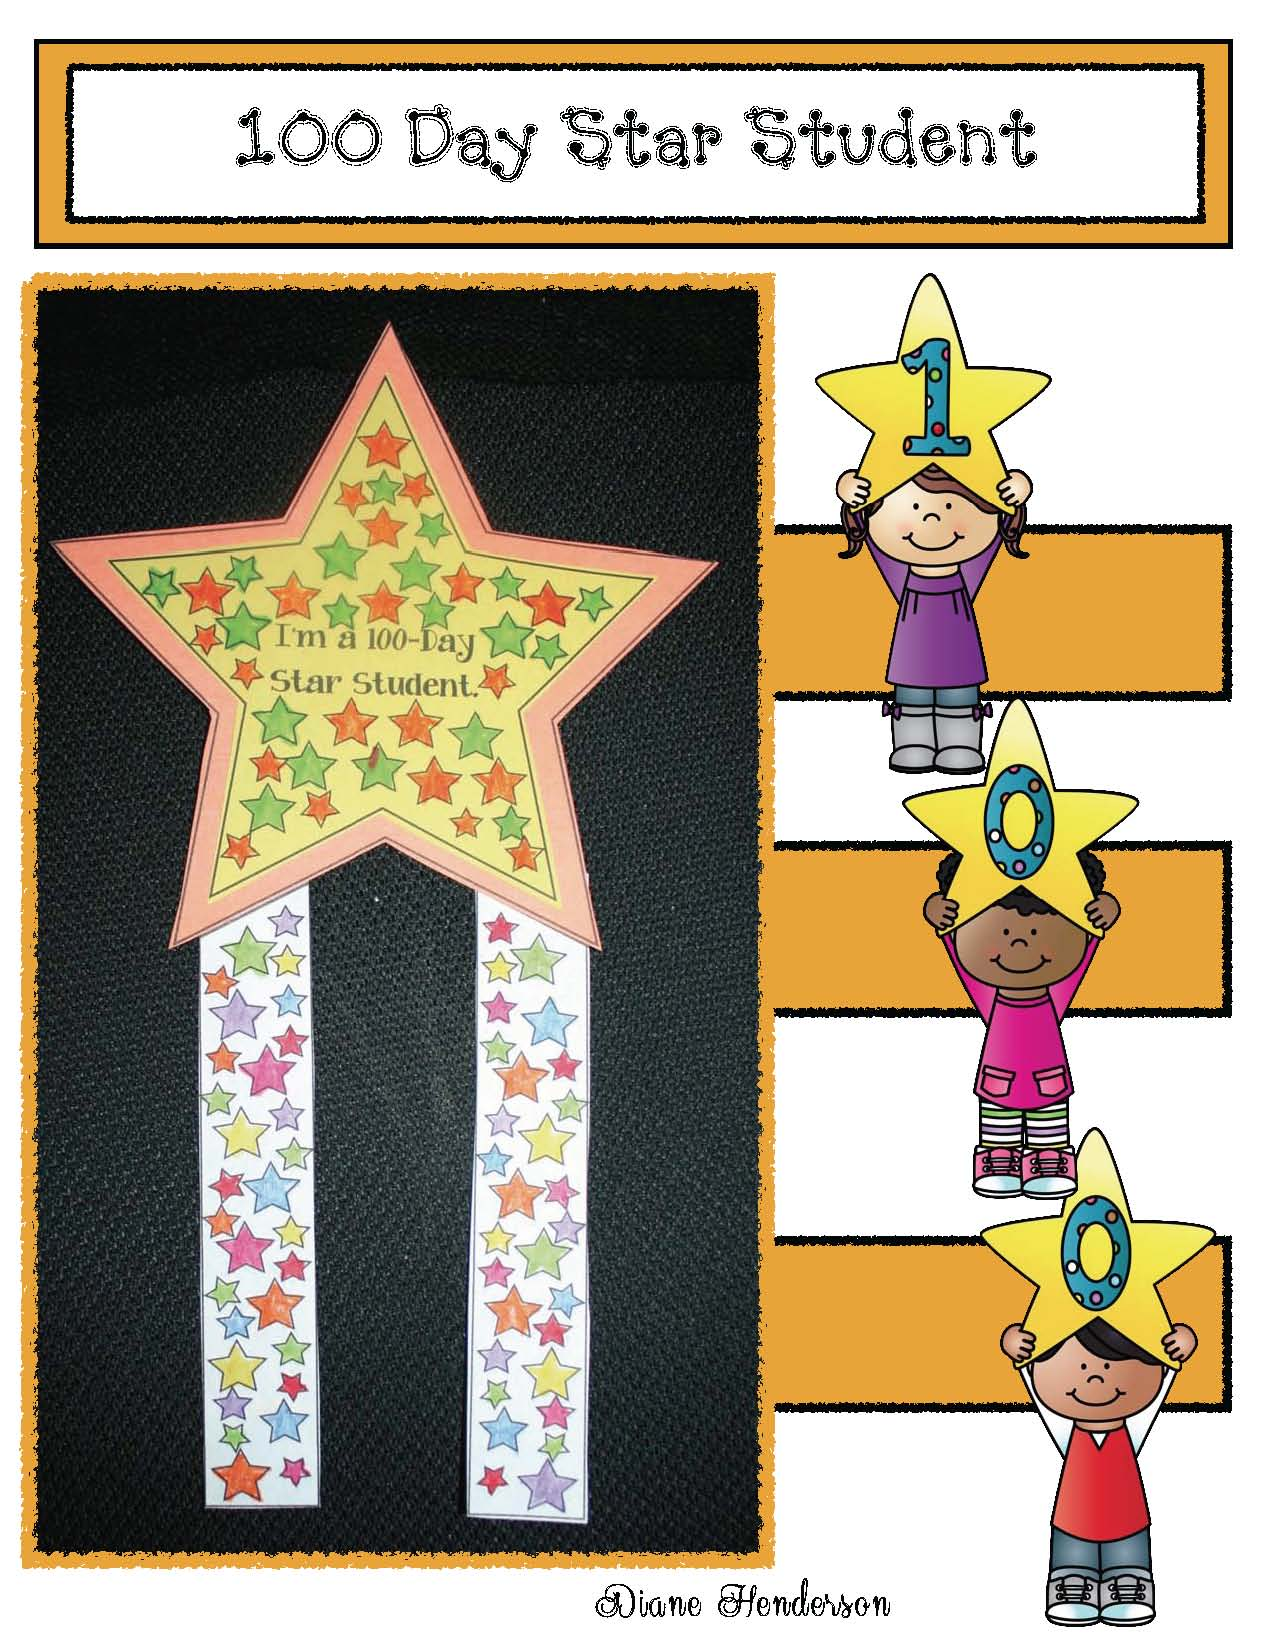 skip counting activities, 100 day activities, 100 day crafts, fun ways to count to 100, 100 day crown